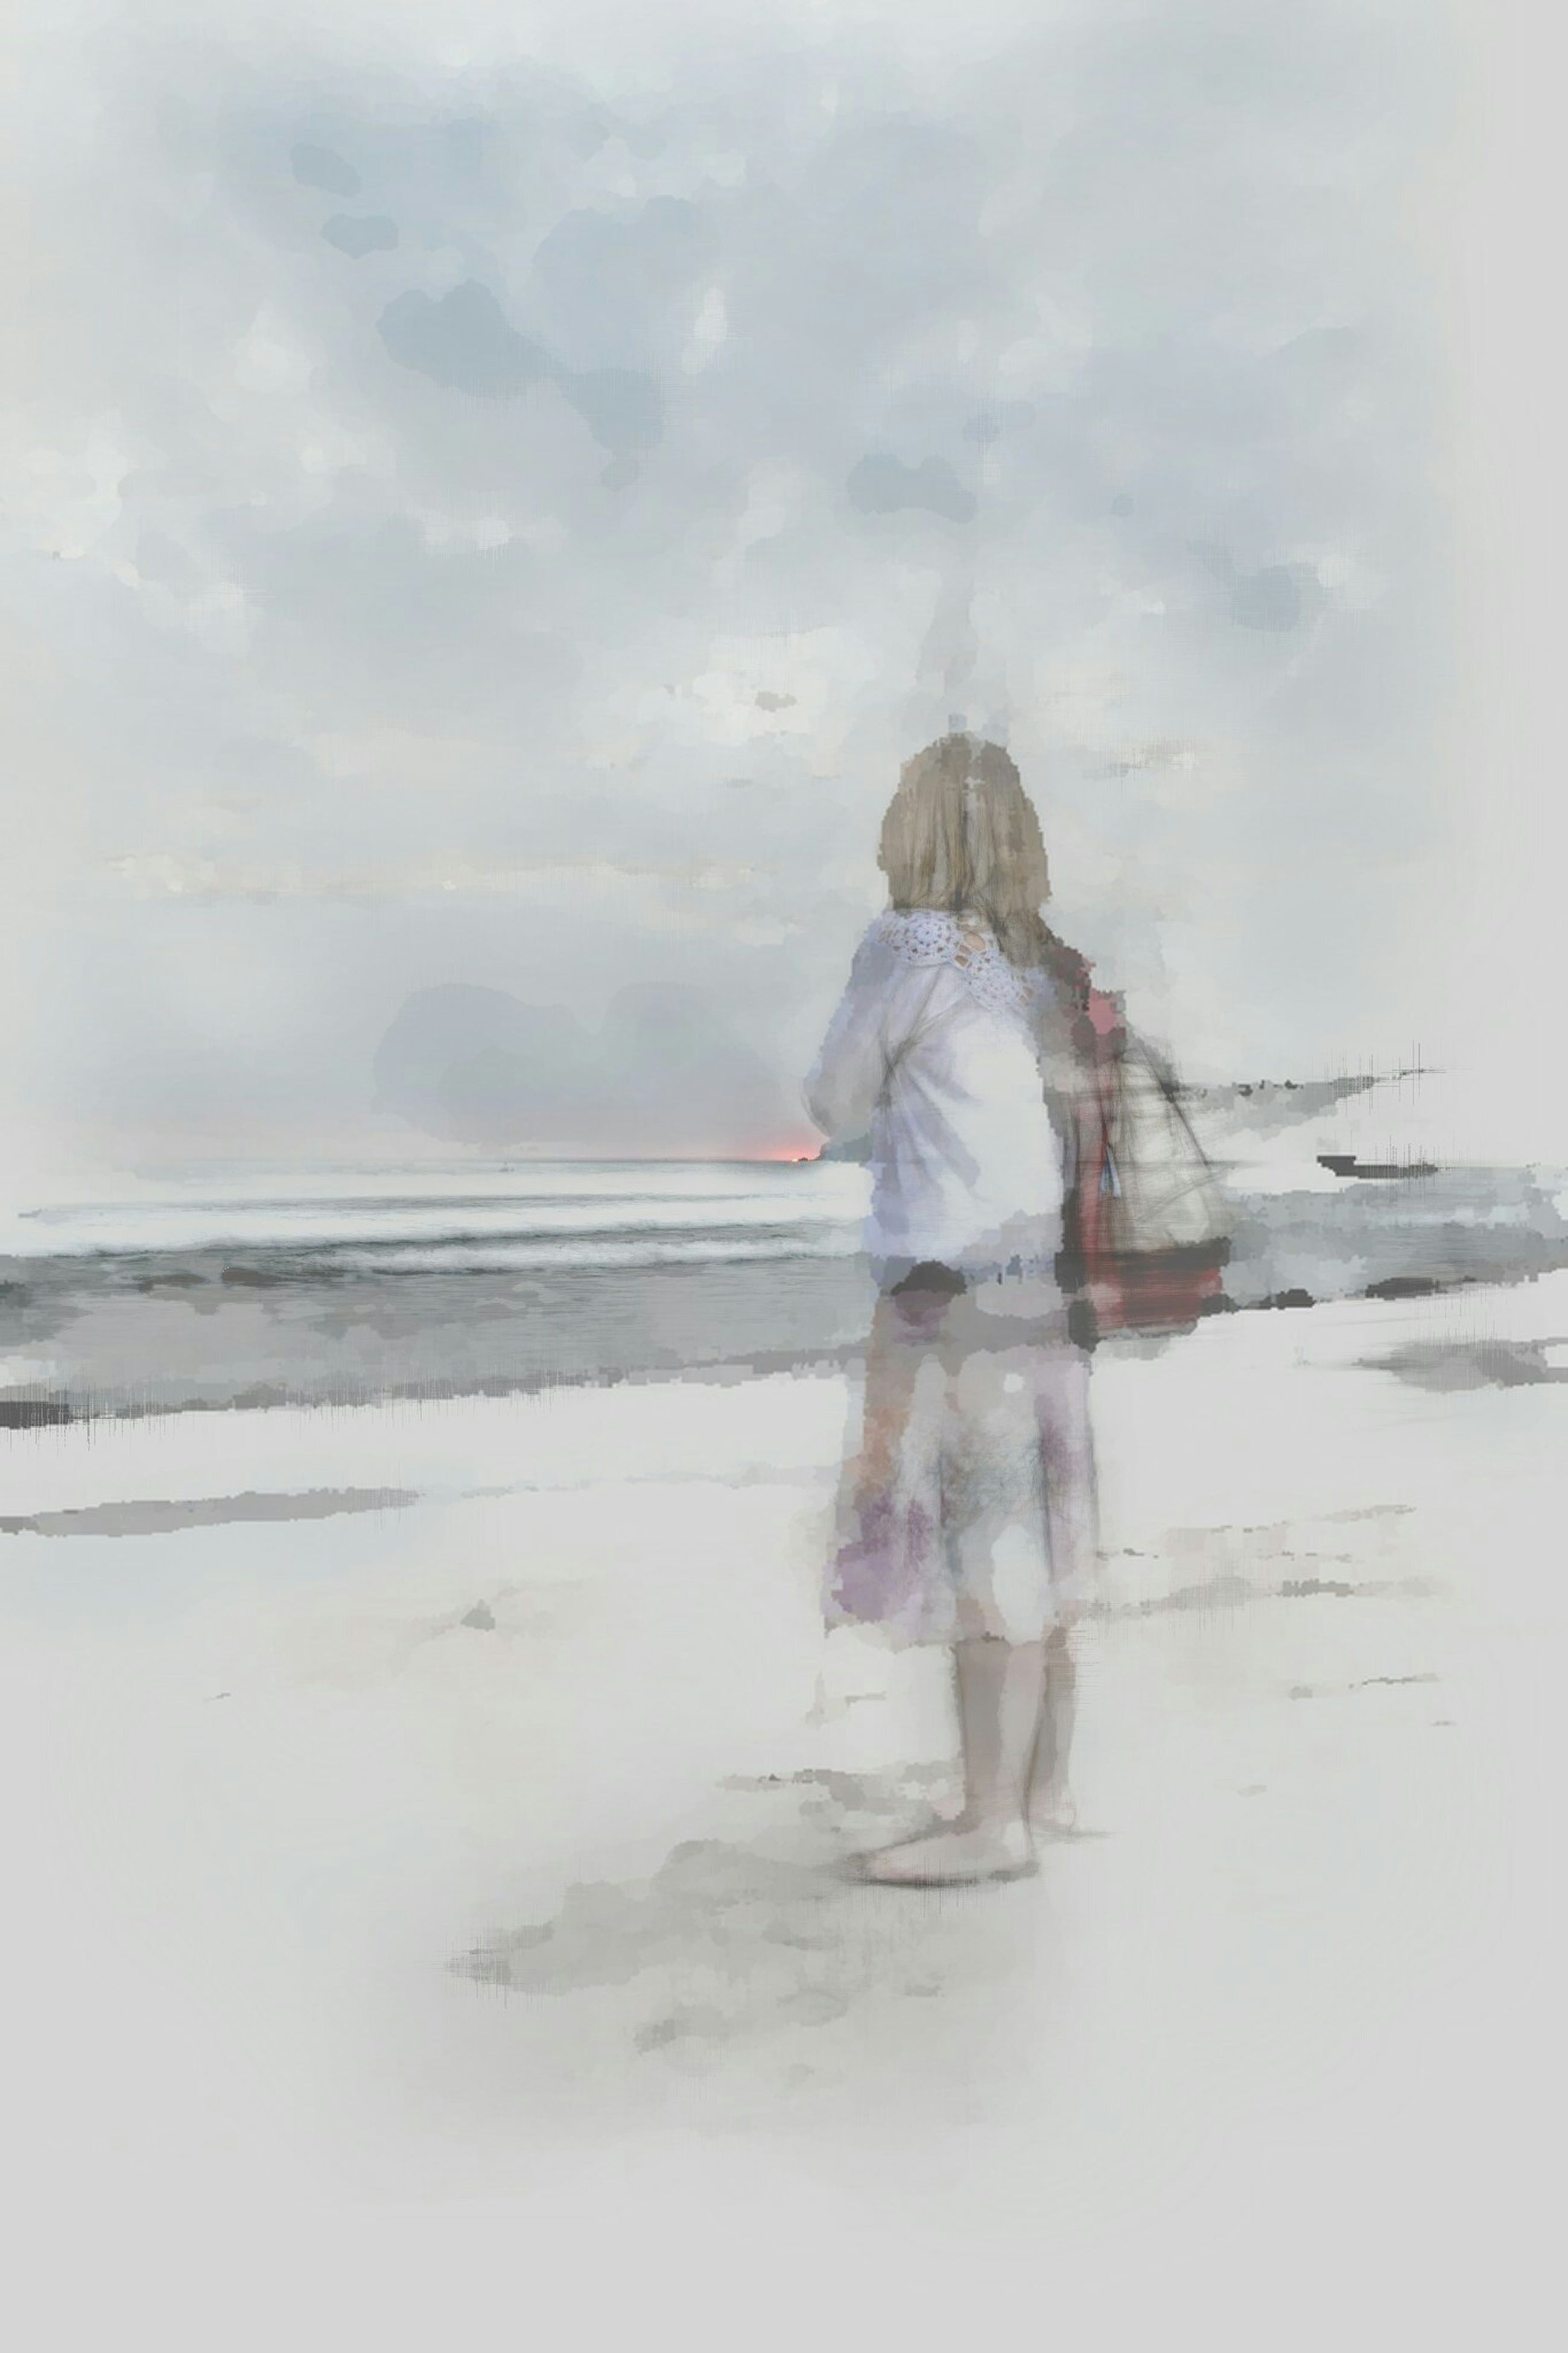 rear view, full length, lifestyles, water, sky, leisure activity, sea, casual clothing, standing, beach, cloud - sky, tranquility, tranquil scene, nature, childhood, horizon over water, day